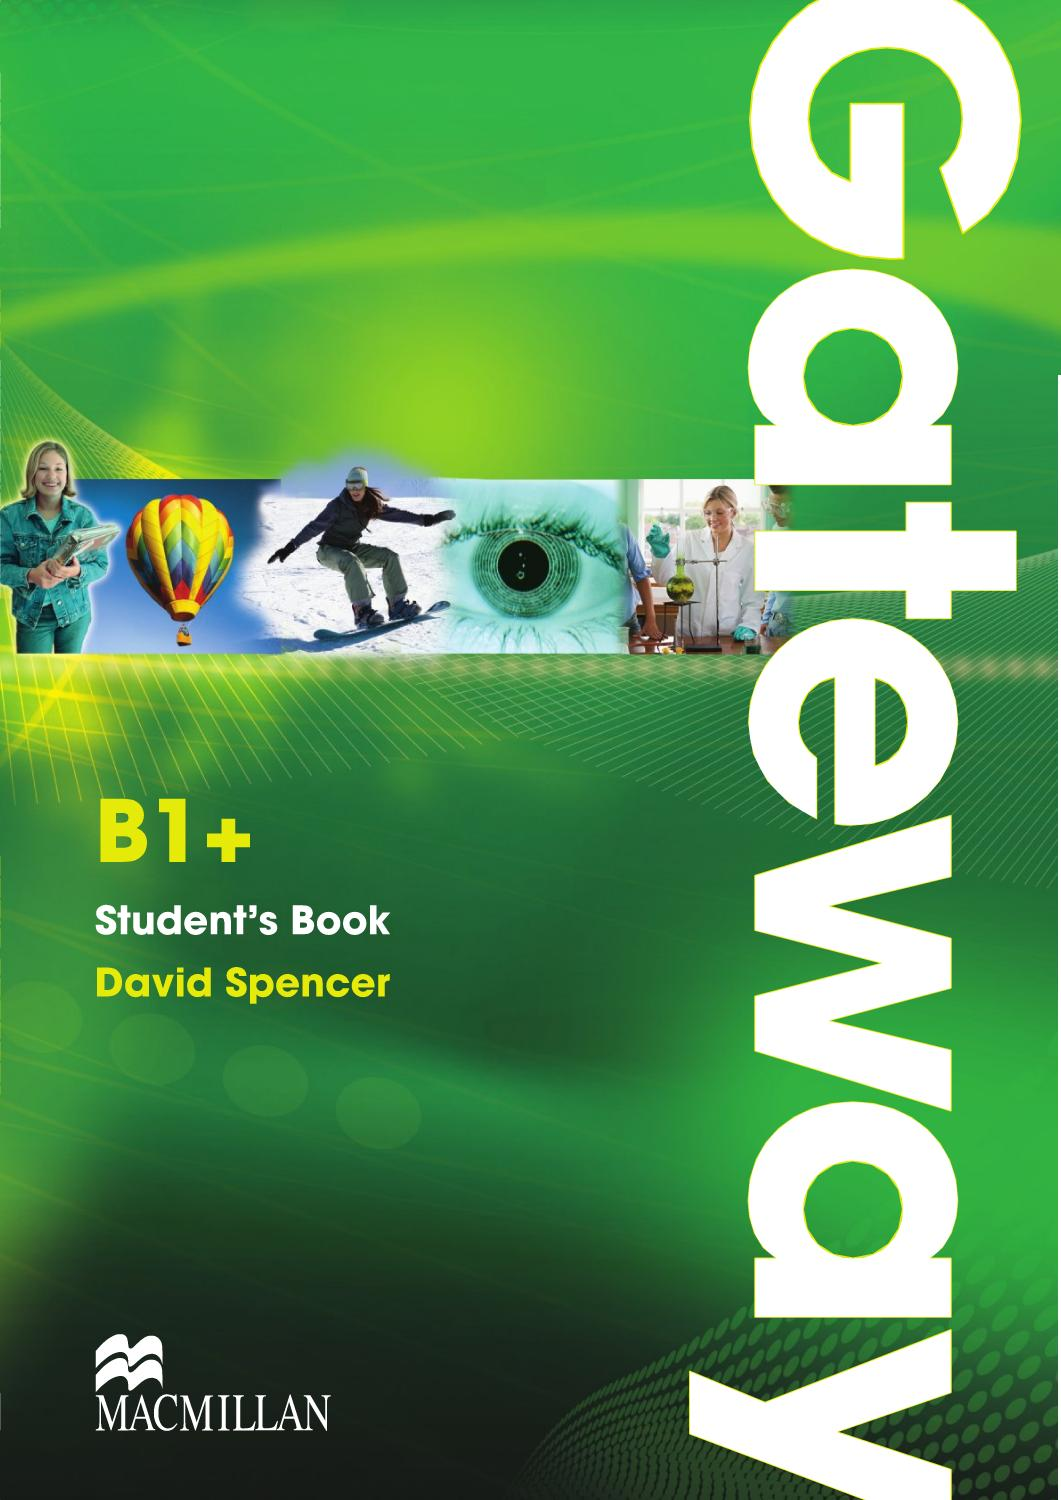 Libros De Macmillan Gateway B1 Student S Book Unit 1 By Macmillan Education Issuu